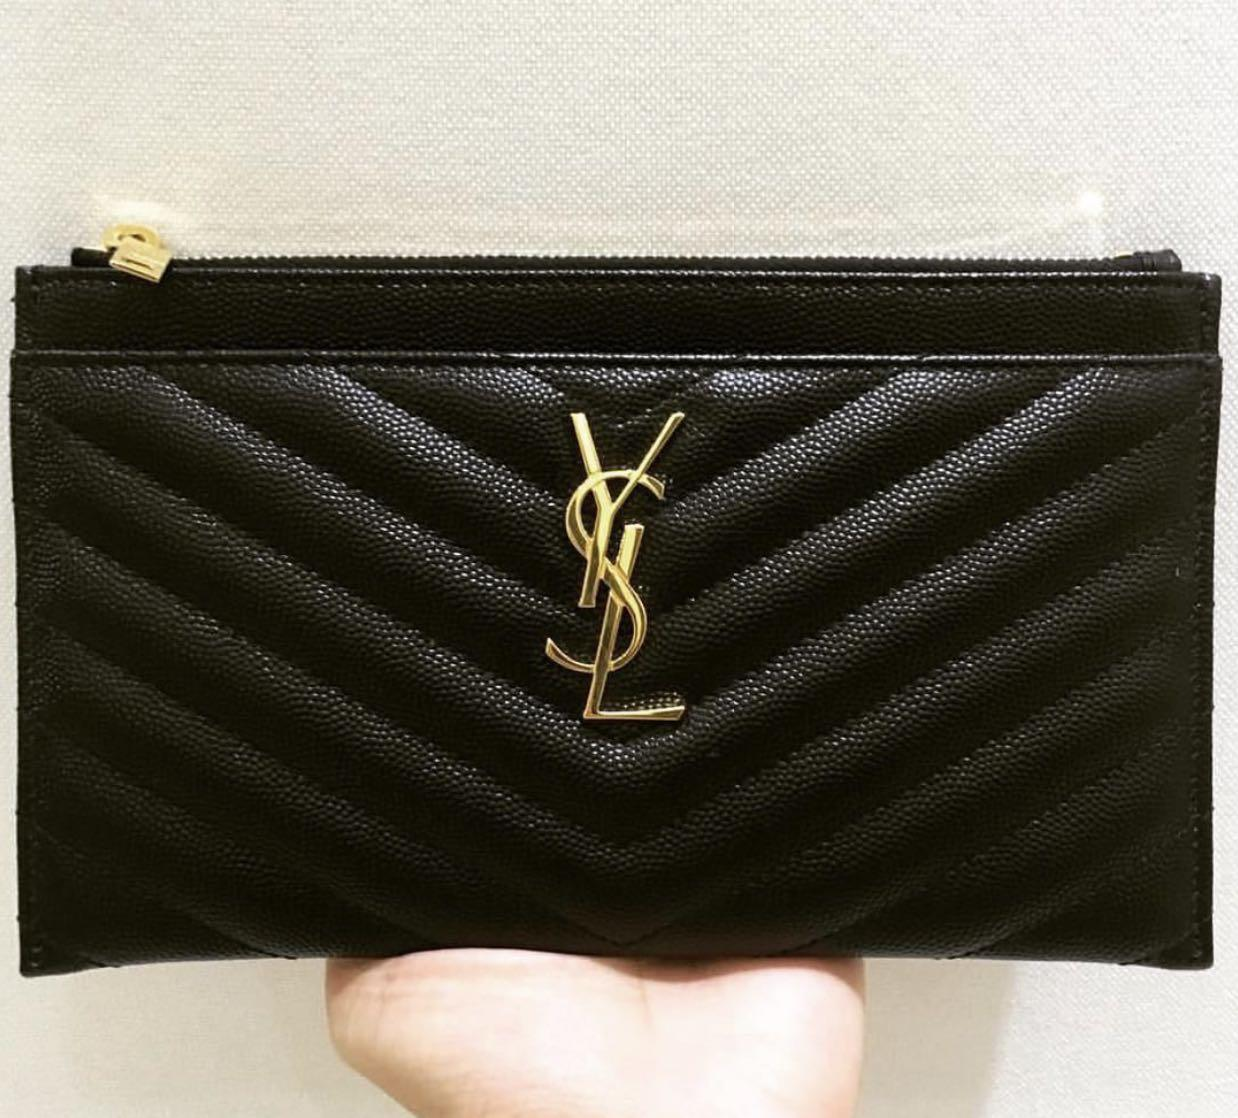 🆕AUTHENTIC YSL MONOGRAM FLAT WALLET WITH ZIP GRAINY LEATHER BLACK in GOLD HARDWARE